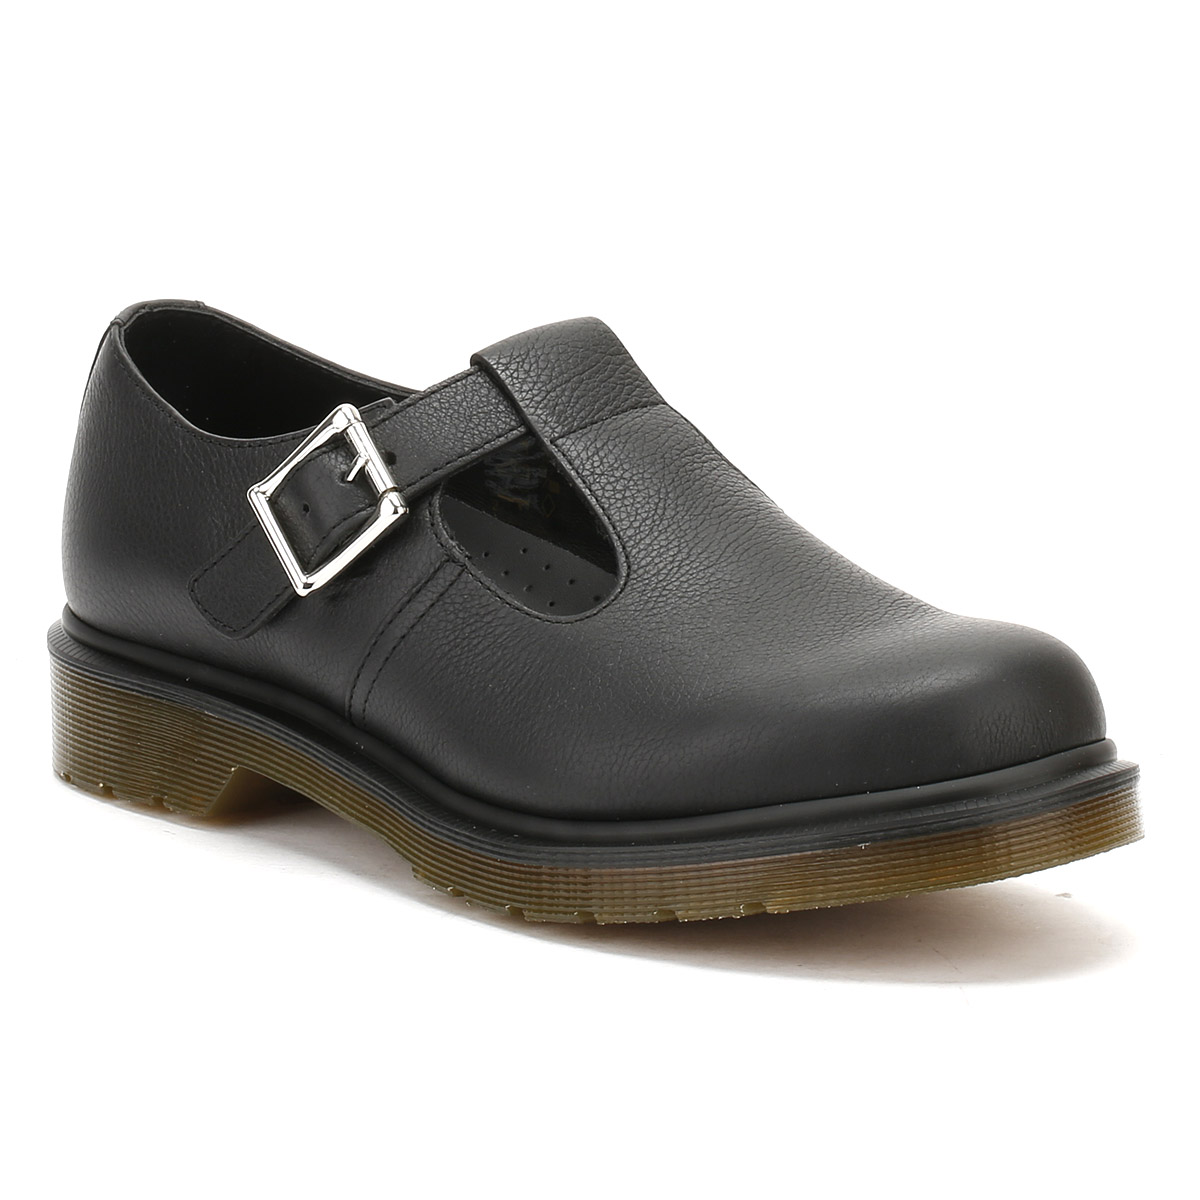 Womens Soft Leather Walking Shoes